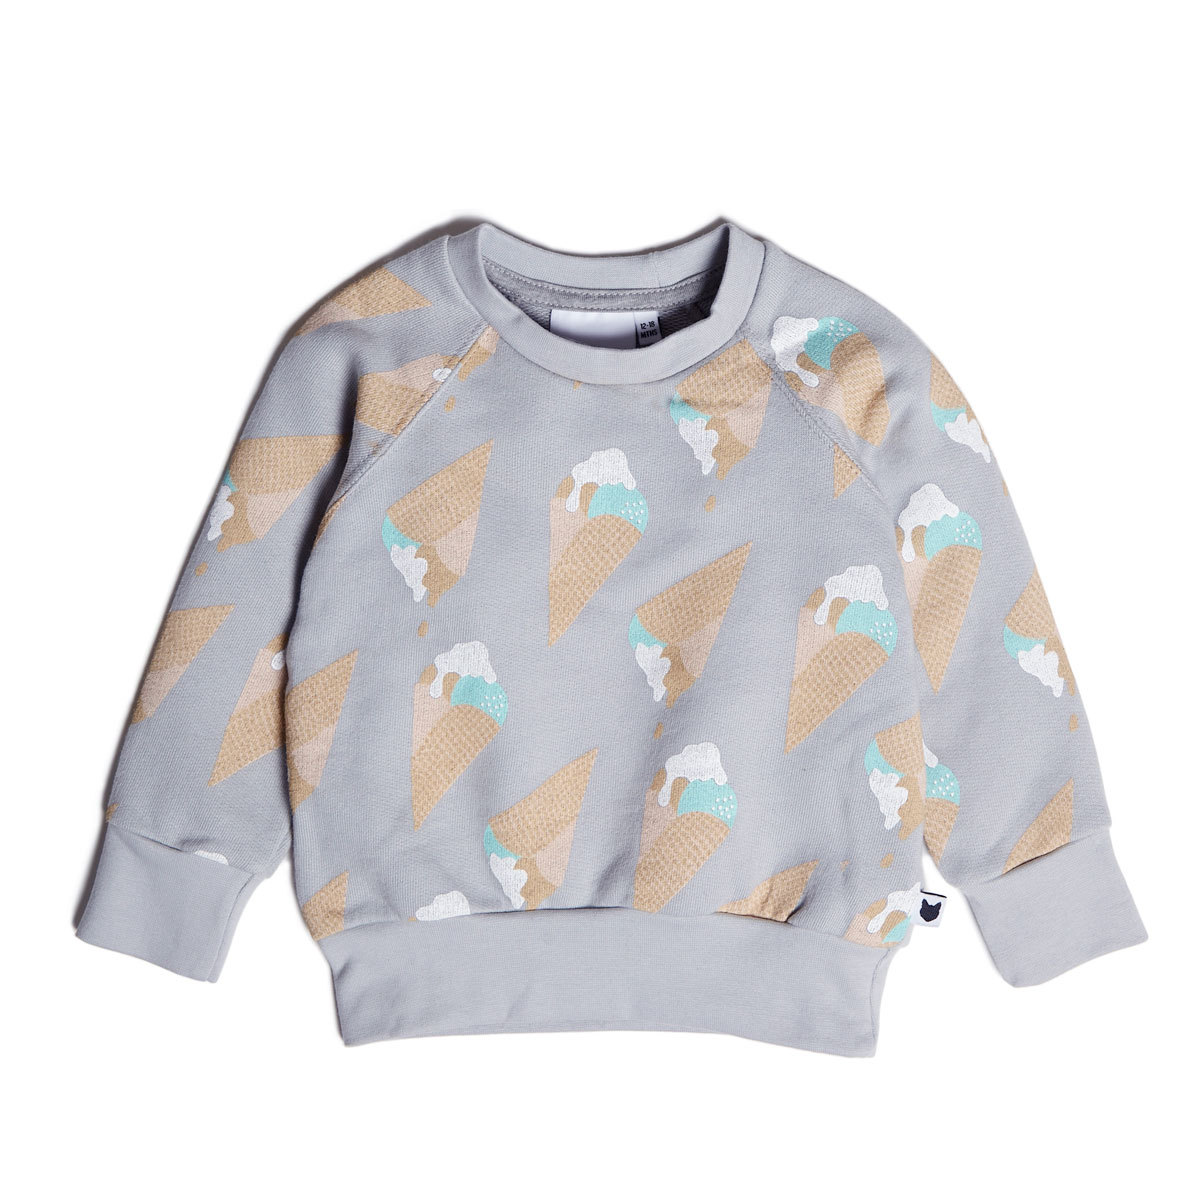 Hauts bébé Sweatshirt Ice Cream - 2/3 Ans Sweatshirt Ice Cream - 2/3 Ans